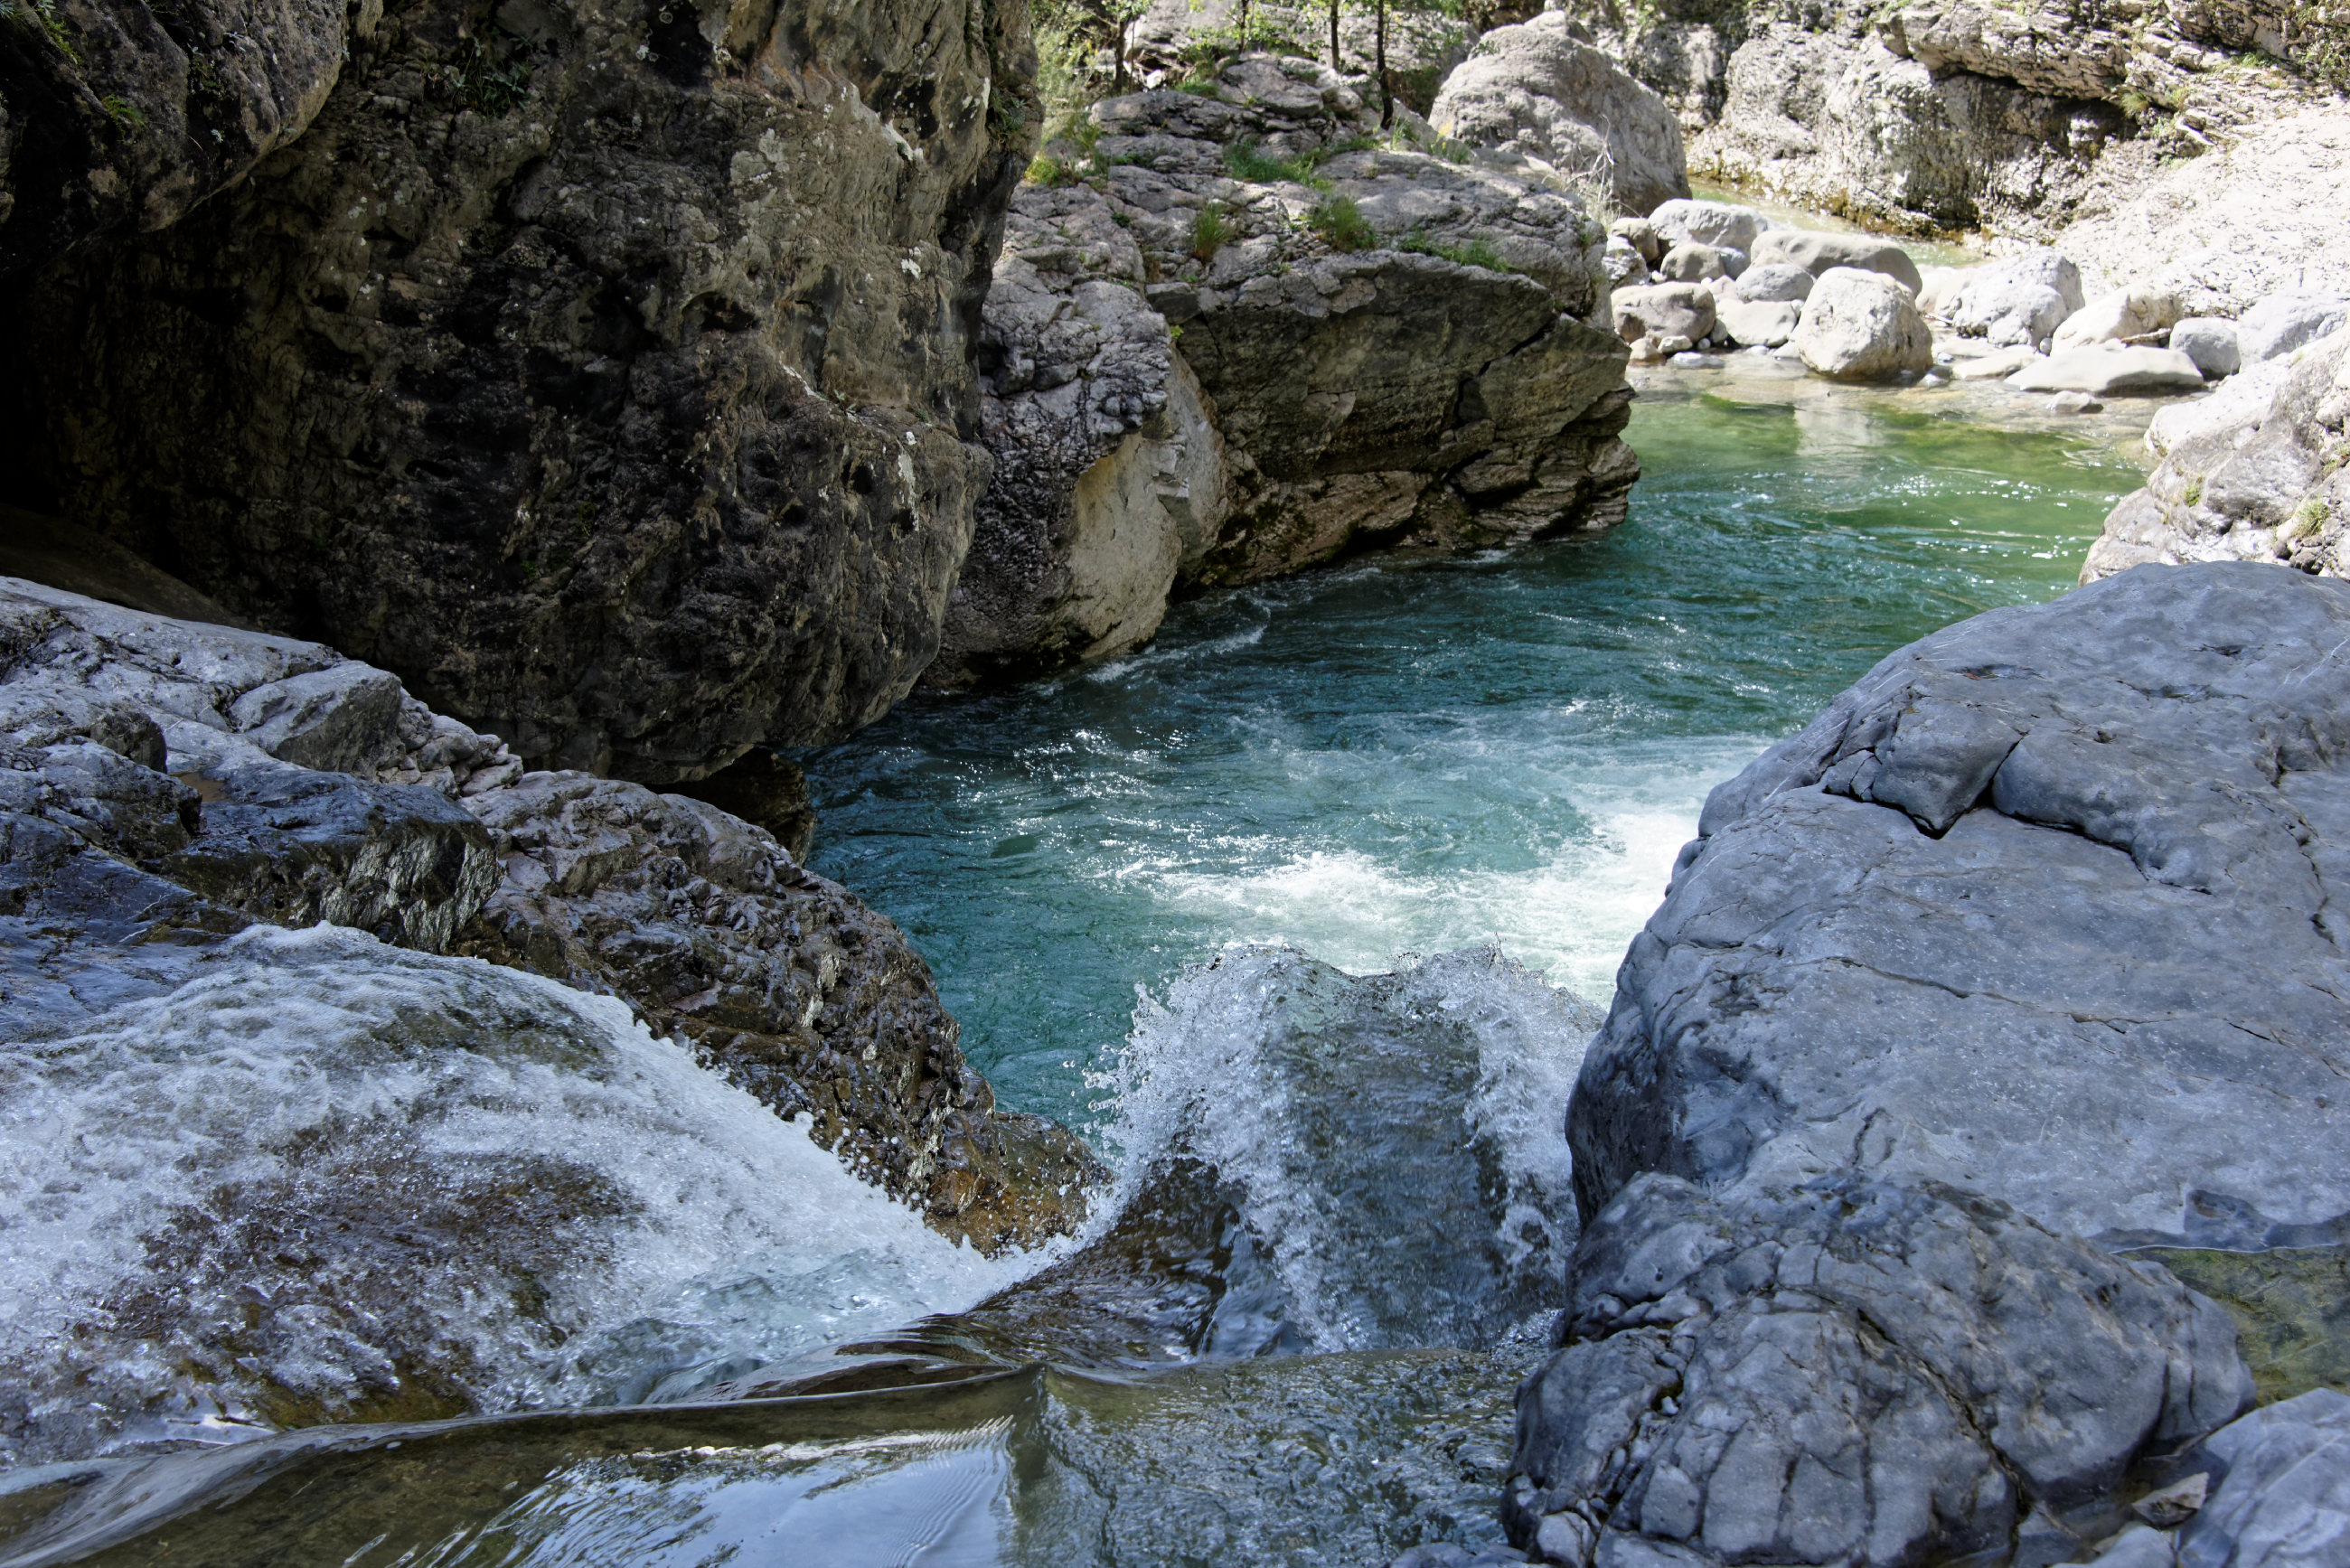 (7833) Canyon d'Anisclo  (Sobrarbe)